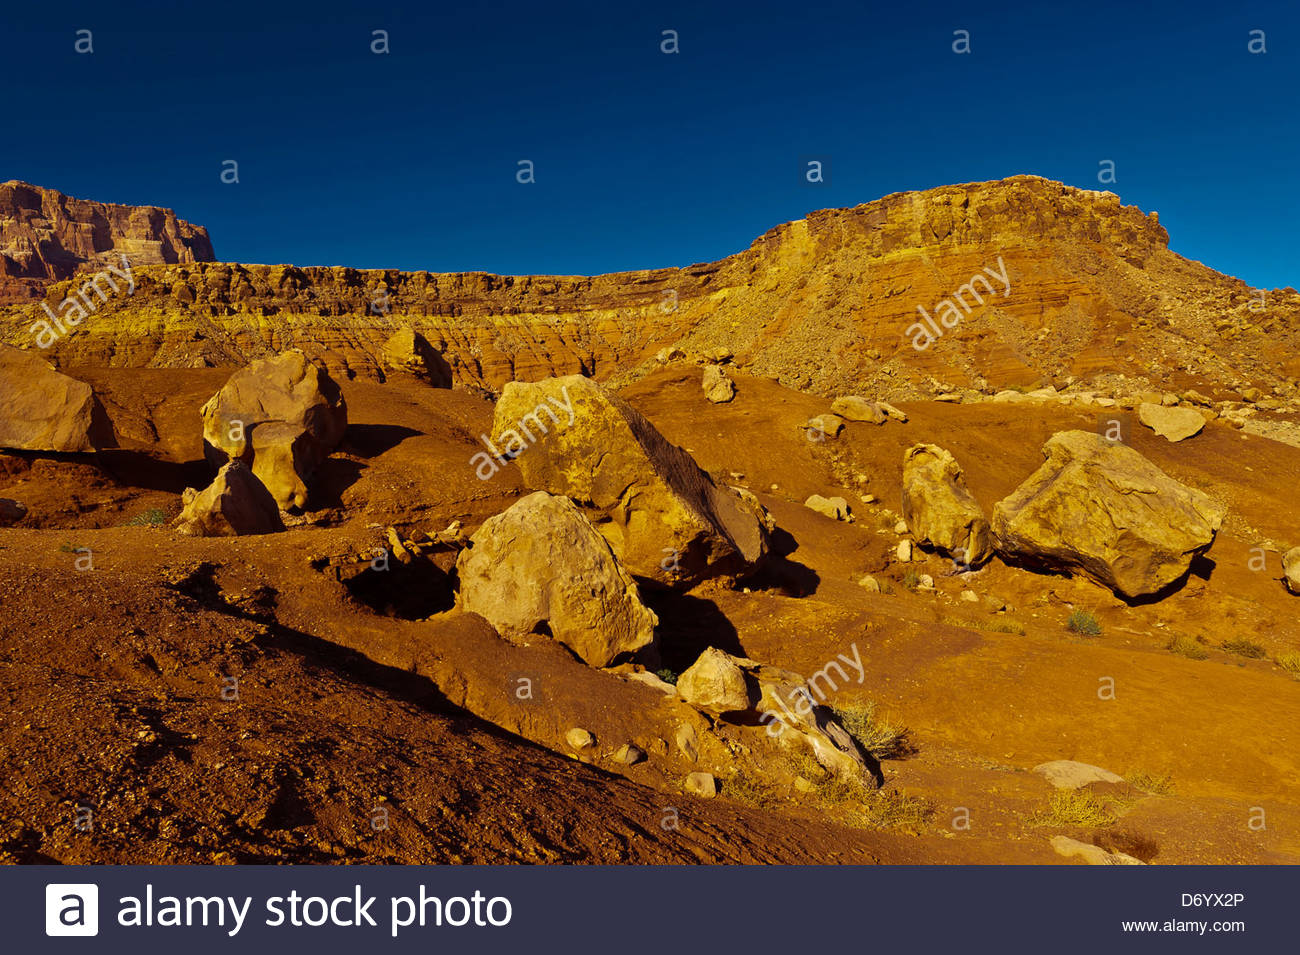 Rock formations at Cliff Dwellers, Paria Canyon-Vermillion Cliffs Wilderness Area, Arizona, USA - Stock Image